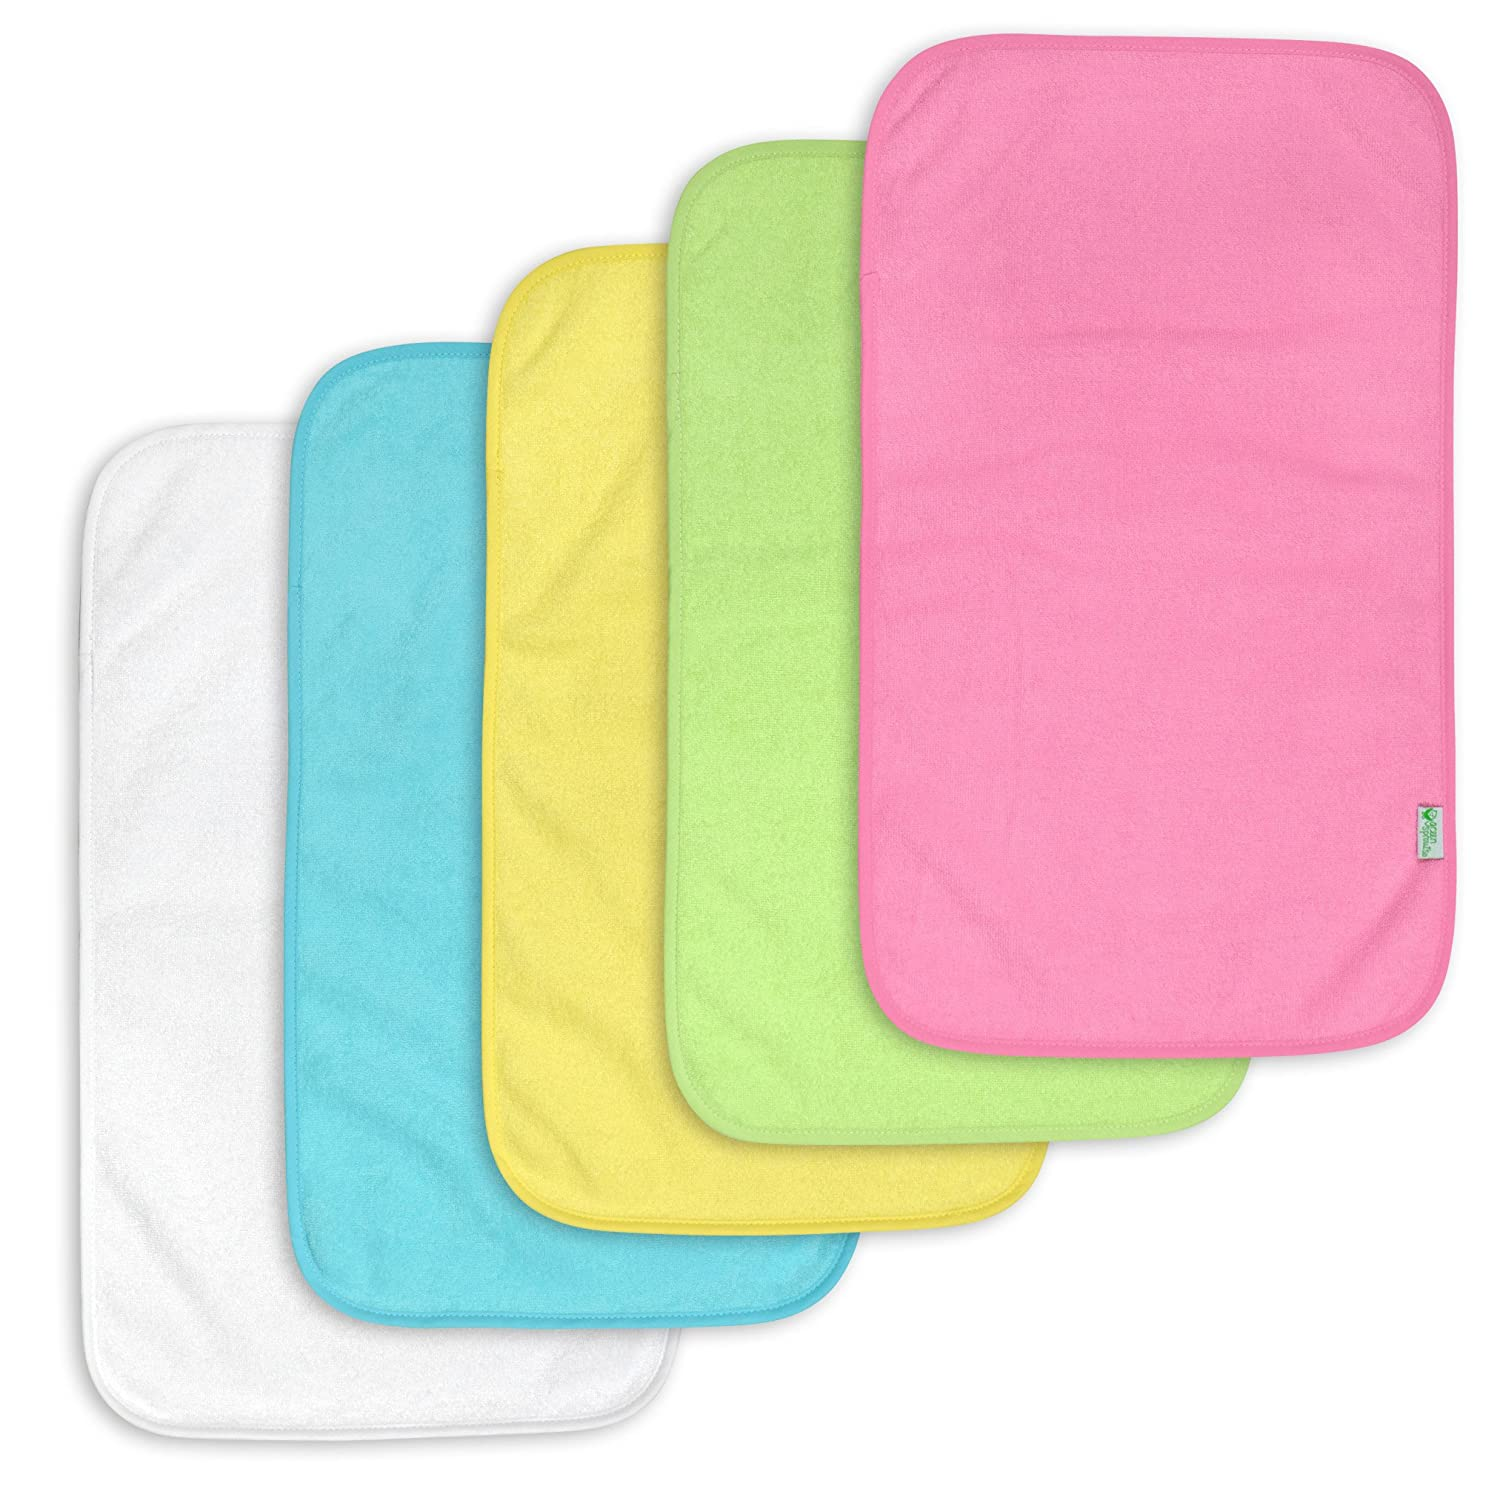 green sprouts 5 Count Waterproof Absorbent Terry Burp Pad, Pink